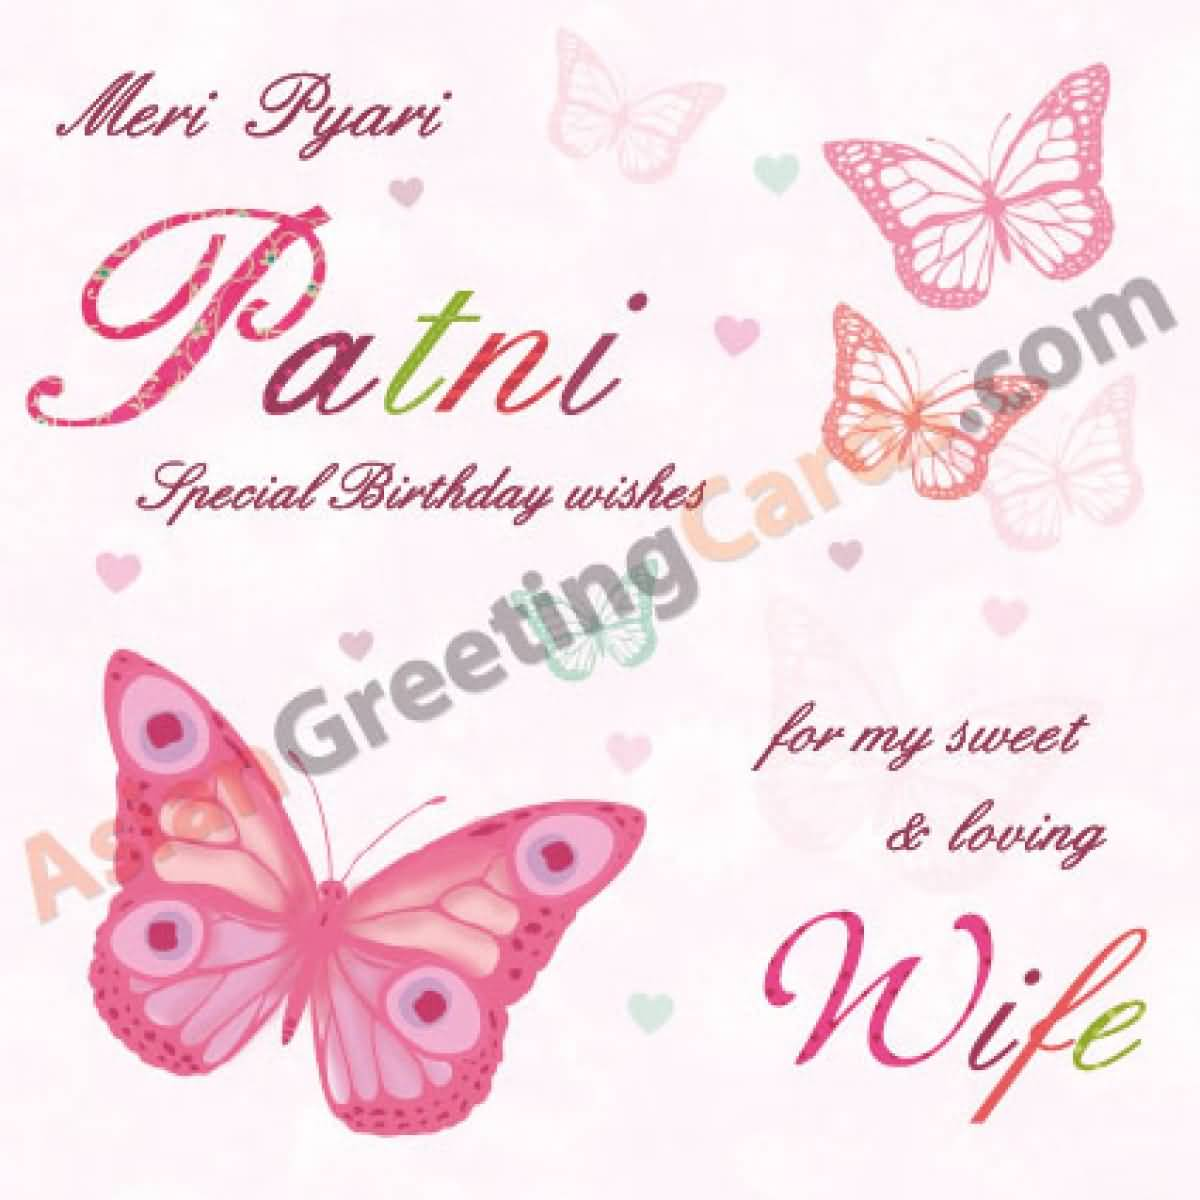 Birthday greetings wishes for wife in hindi nicewishes